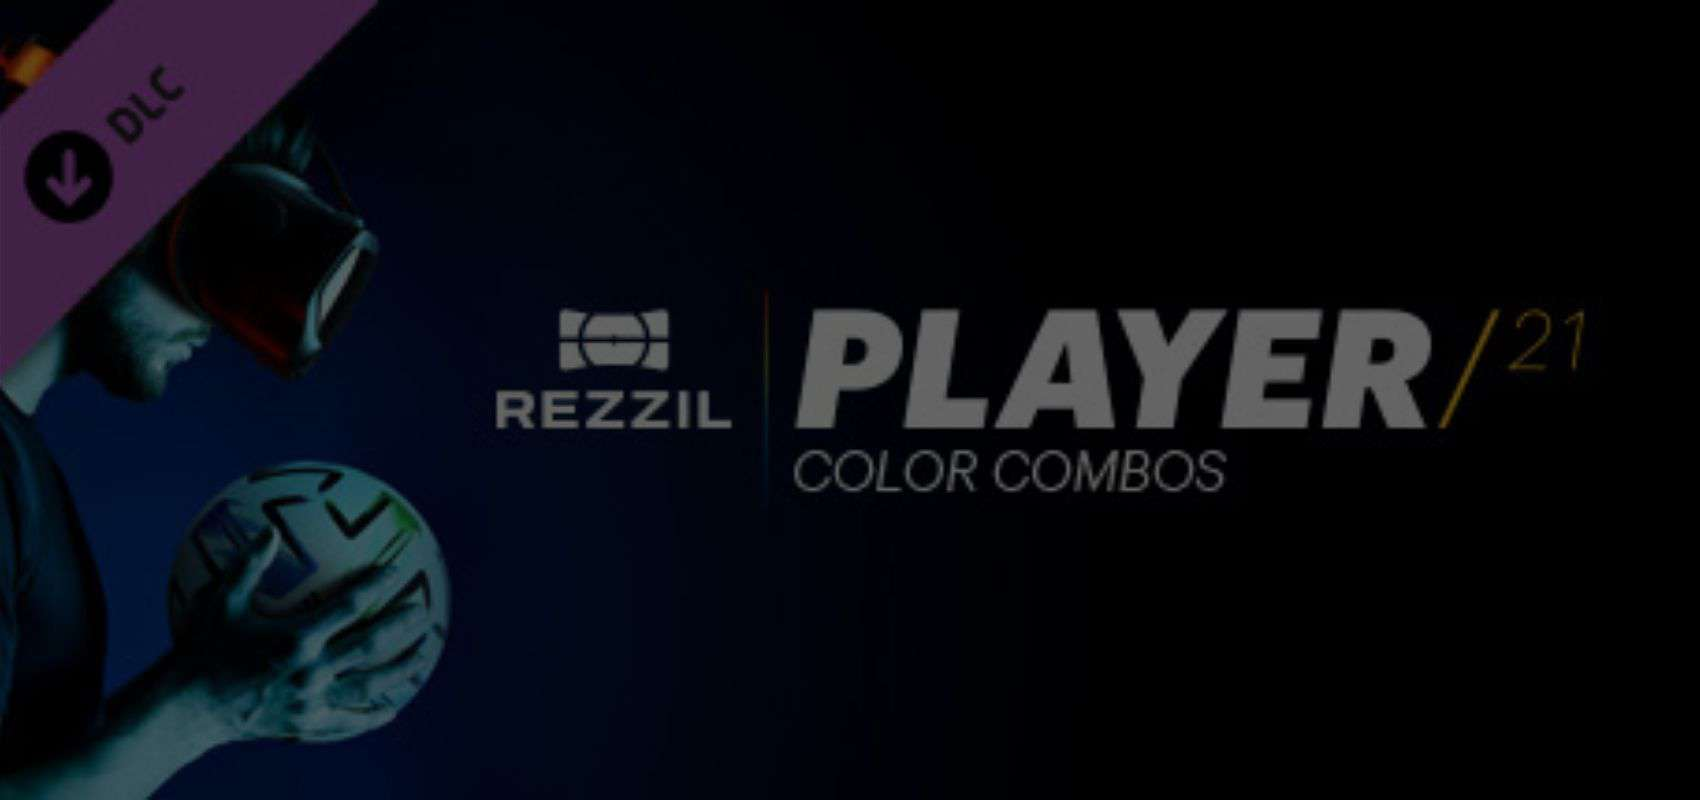 Free-to-play virtual-reality soccer simulator Rezzil Player 21 adds new star signing 'Color Combo' DLC to its lineup of elite training drills